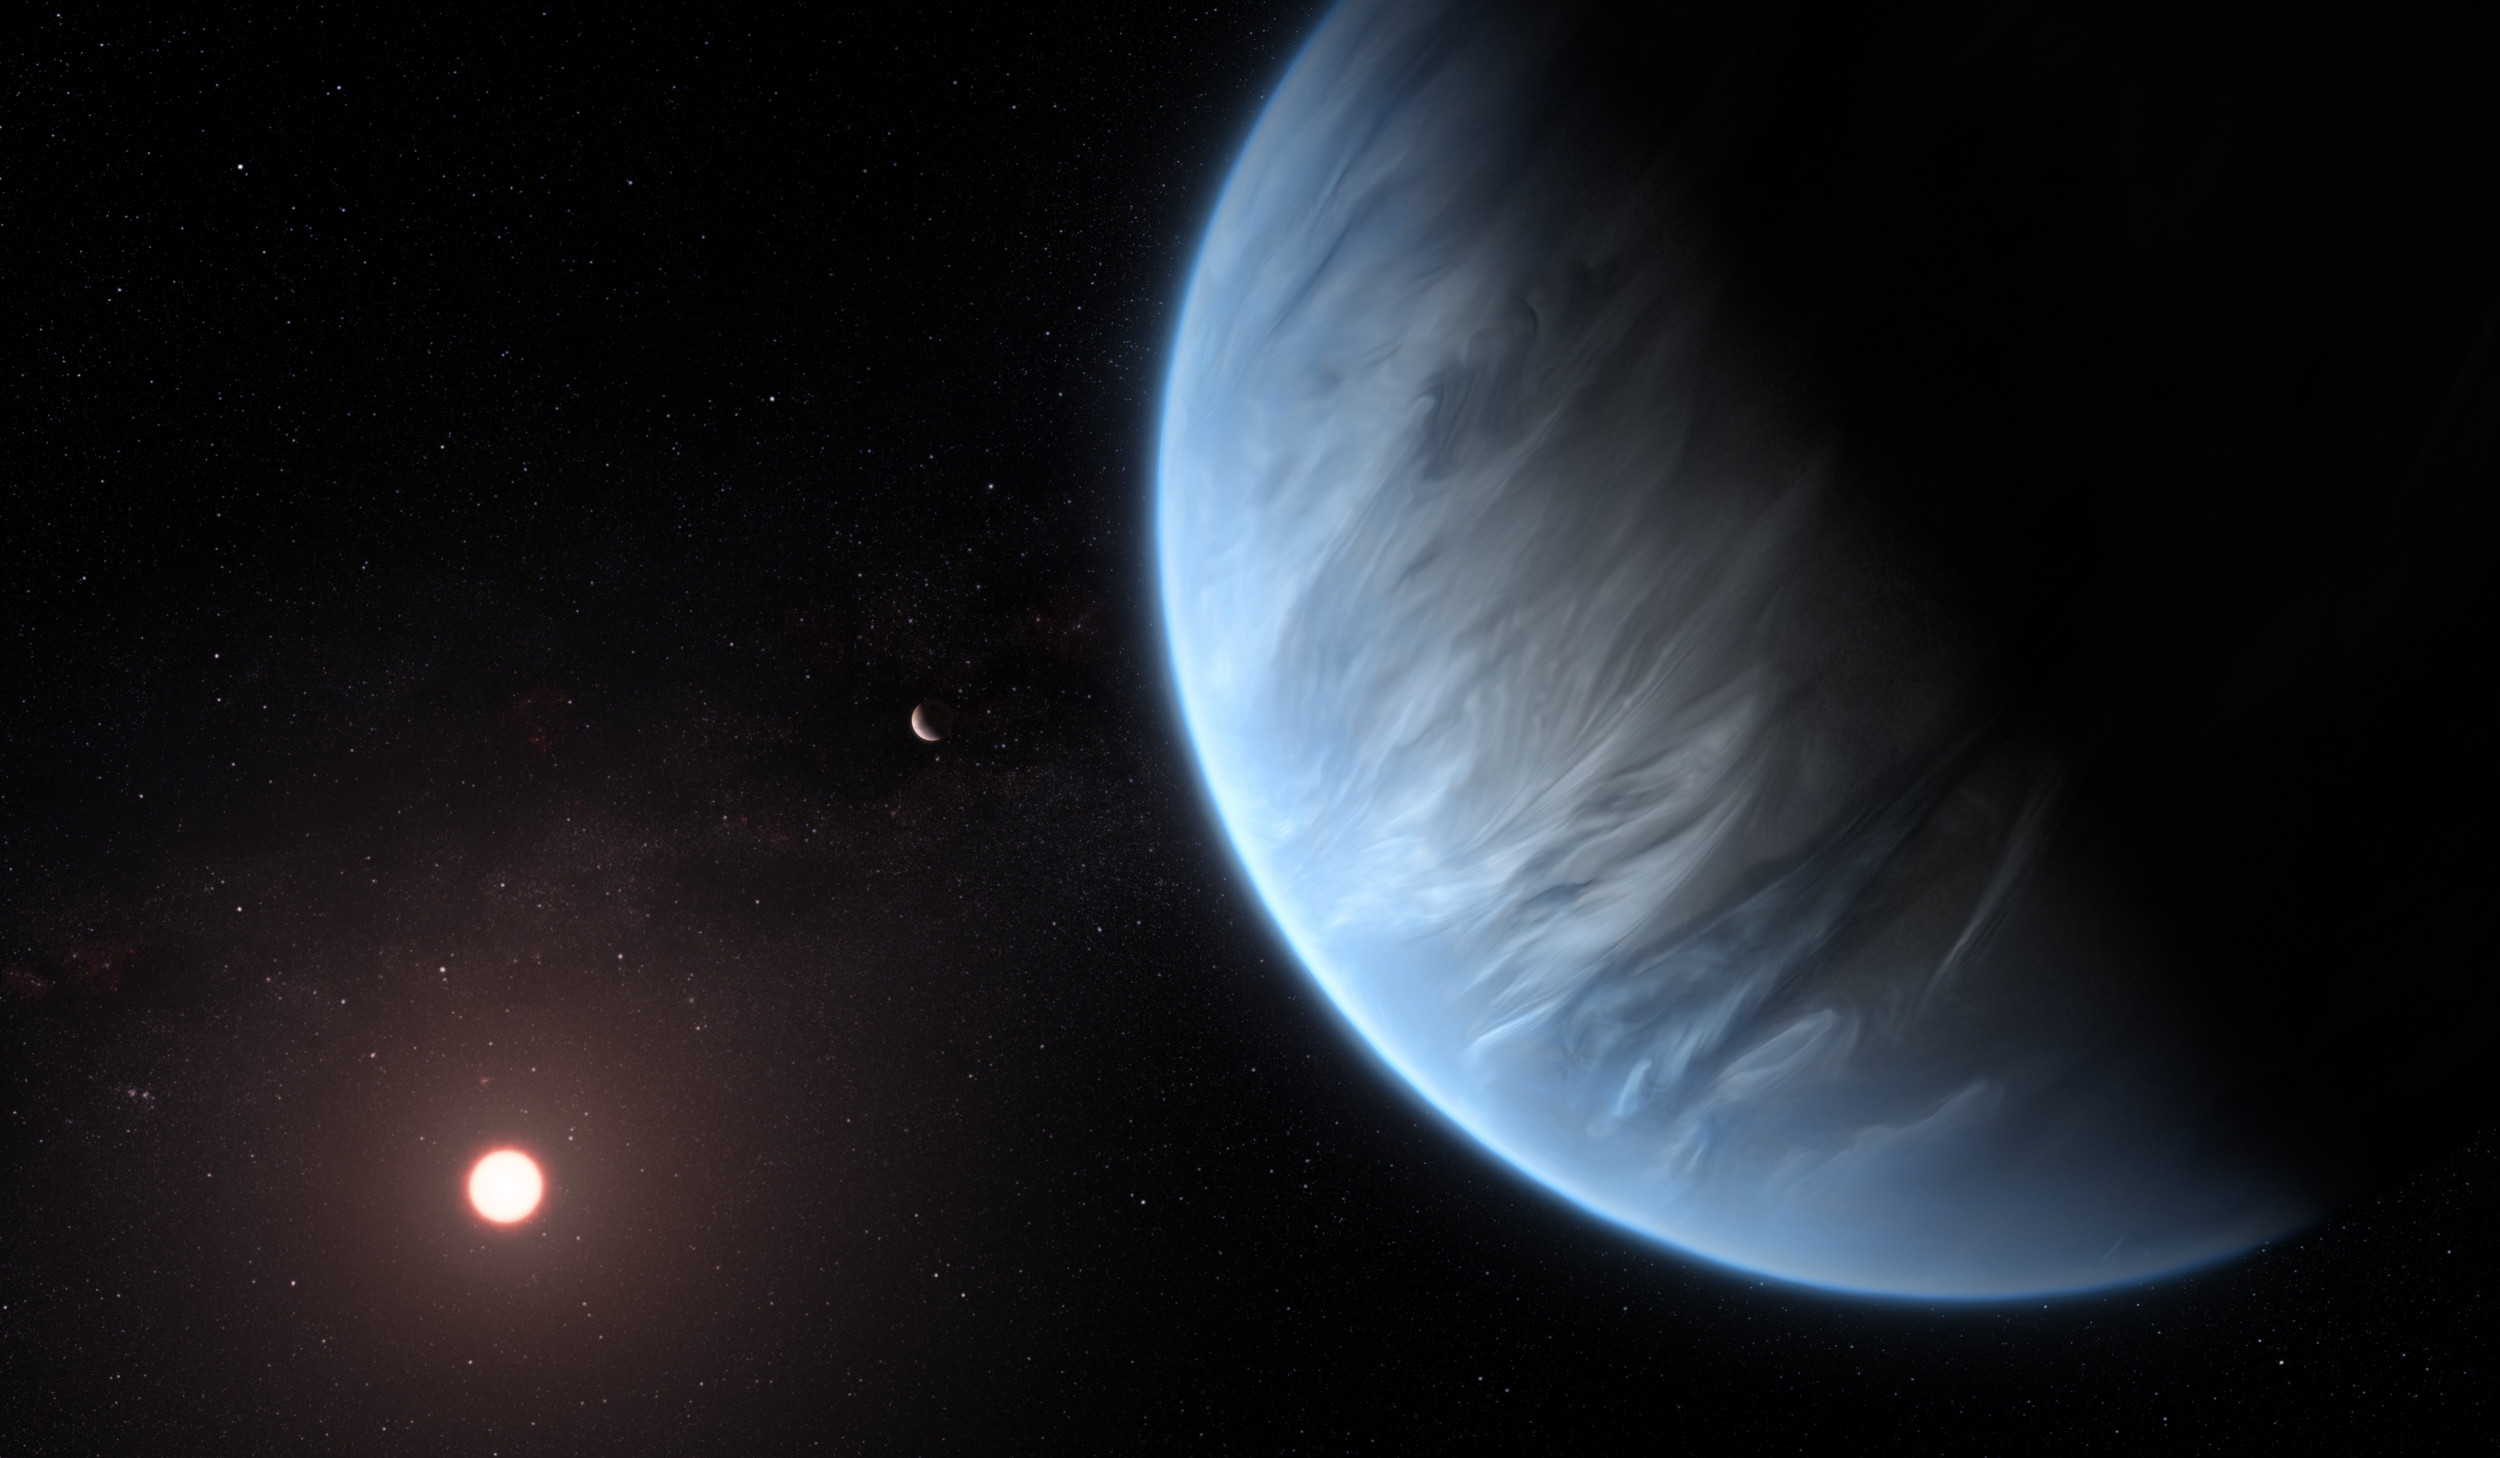 Water vapor has been found in the atmosphere of a potentially habitable super-Earth